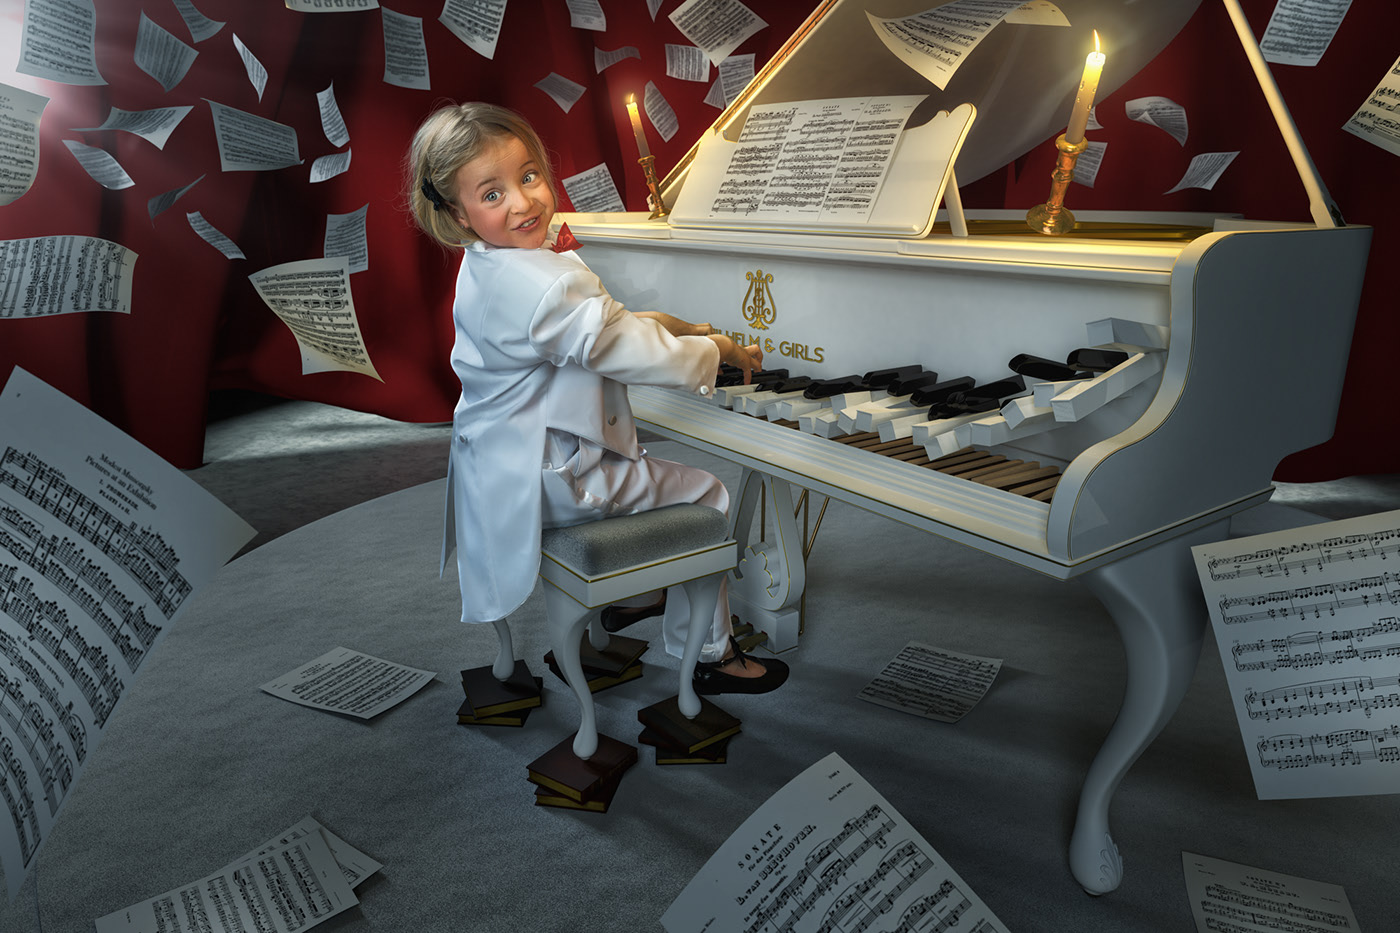 photo manipulation pianist by john wilhelm